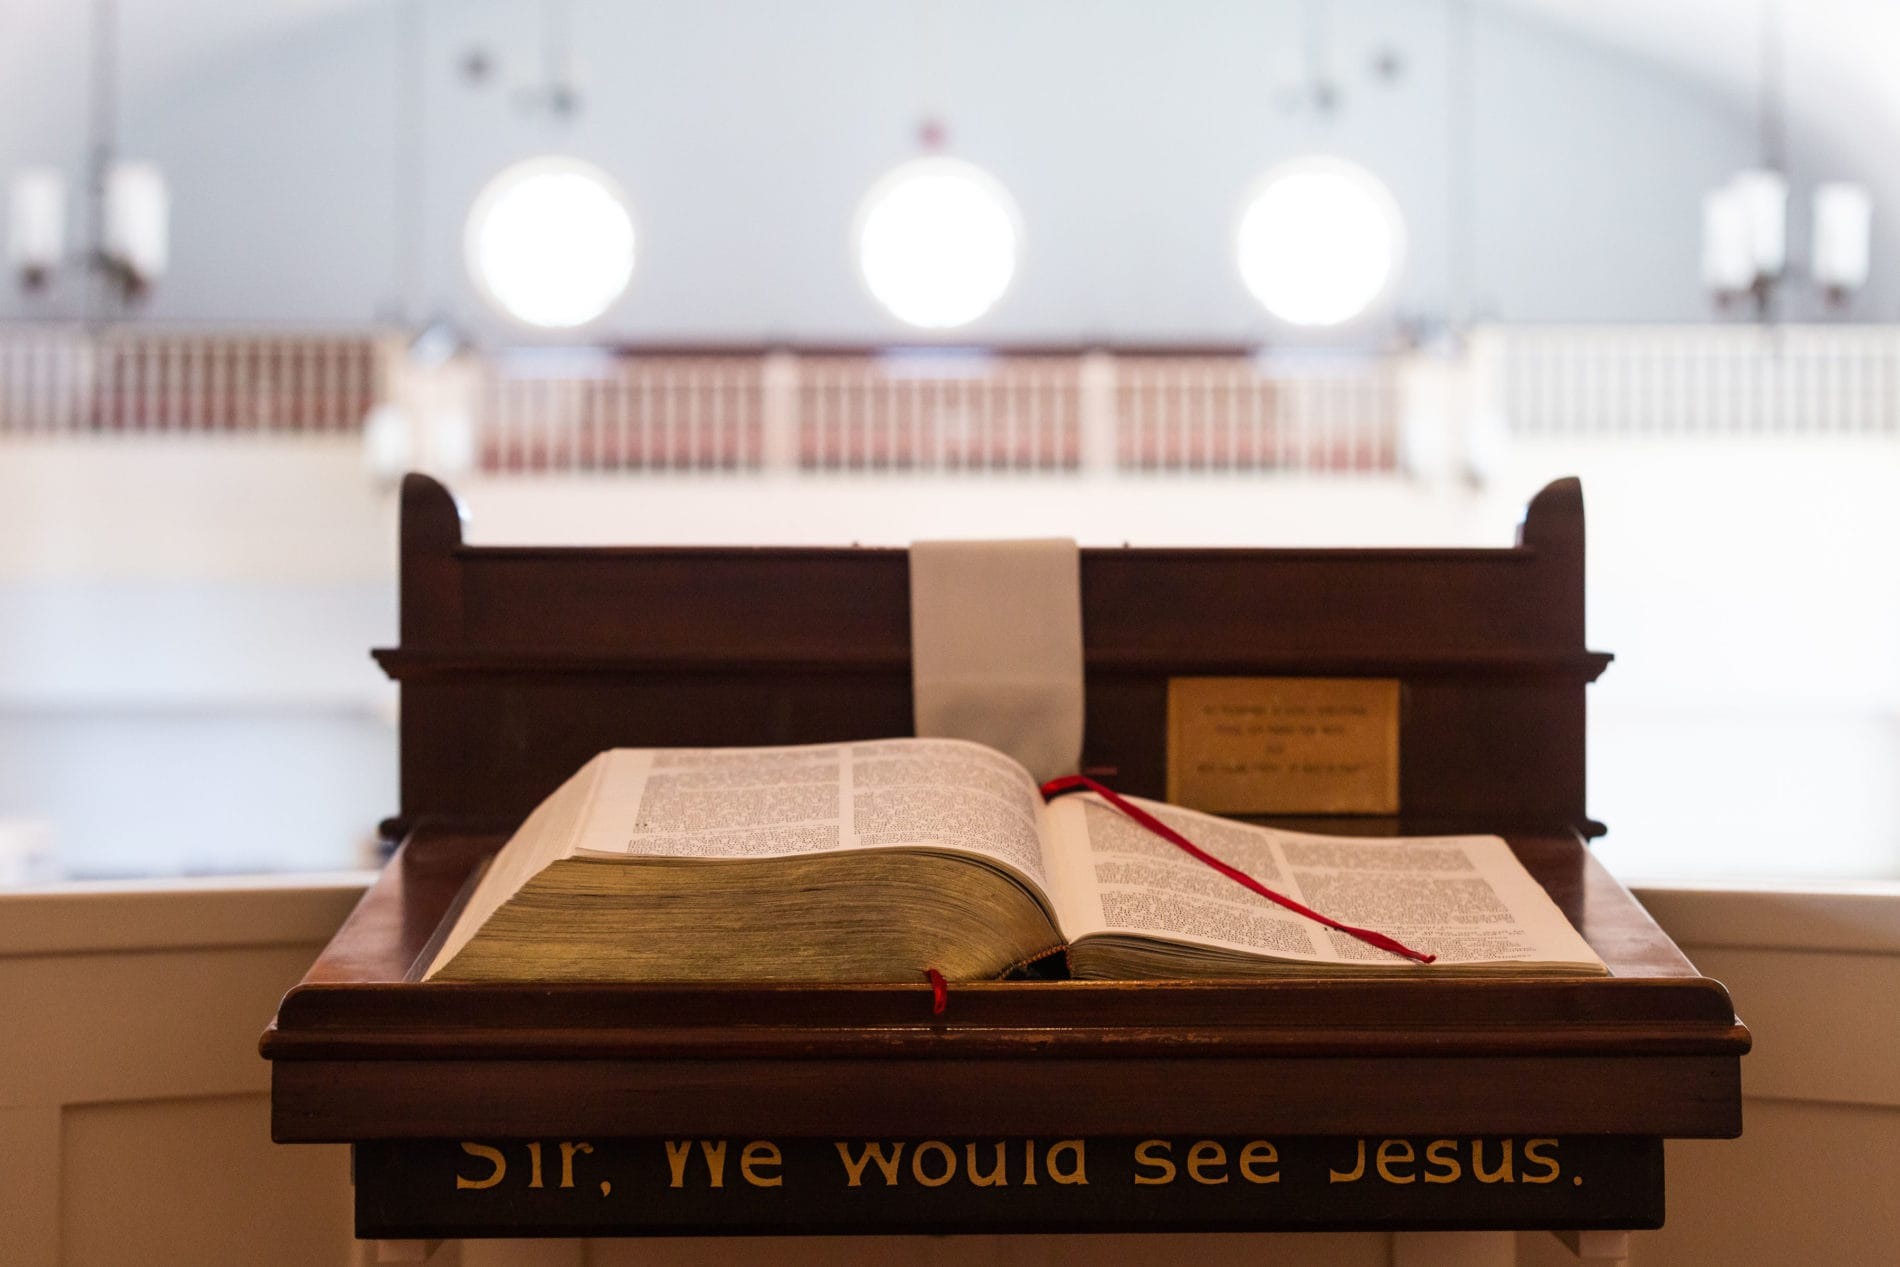 An open Bible sits on the pulpit. The words,